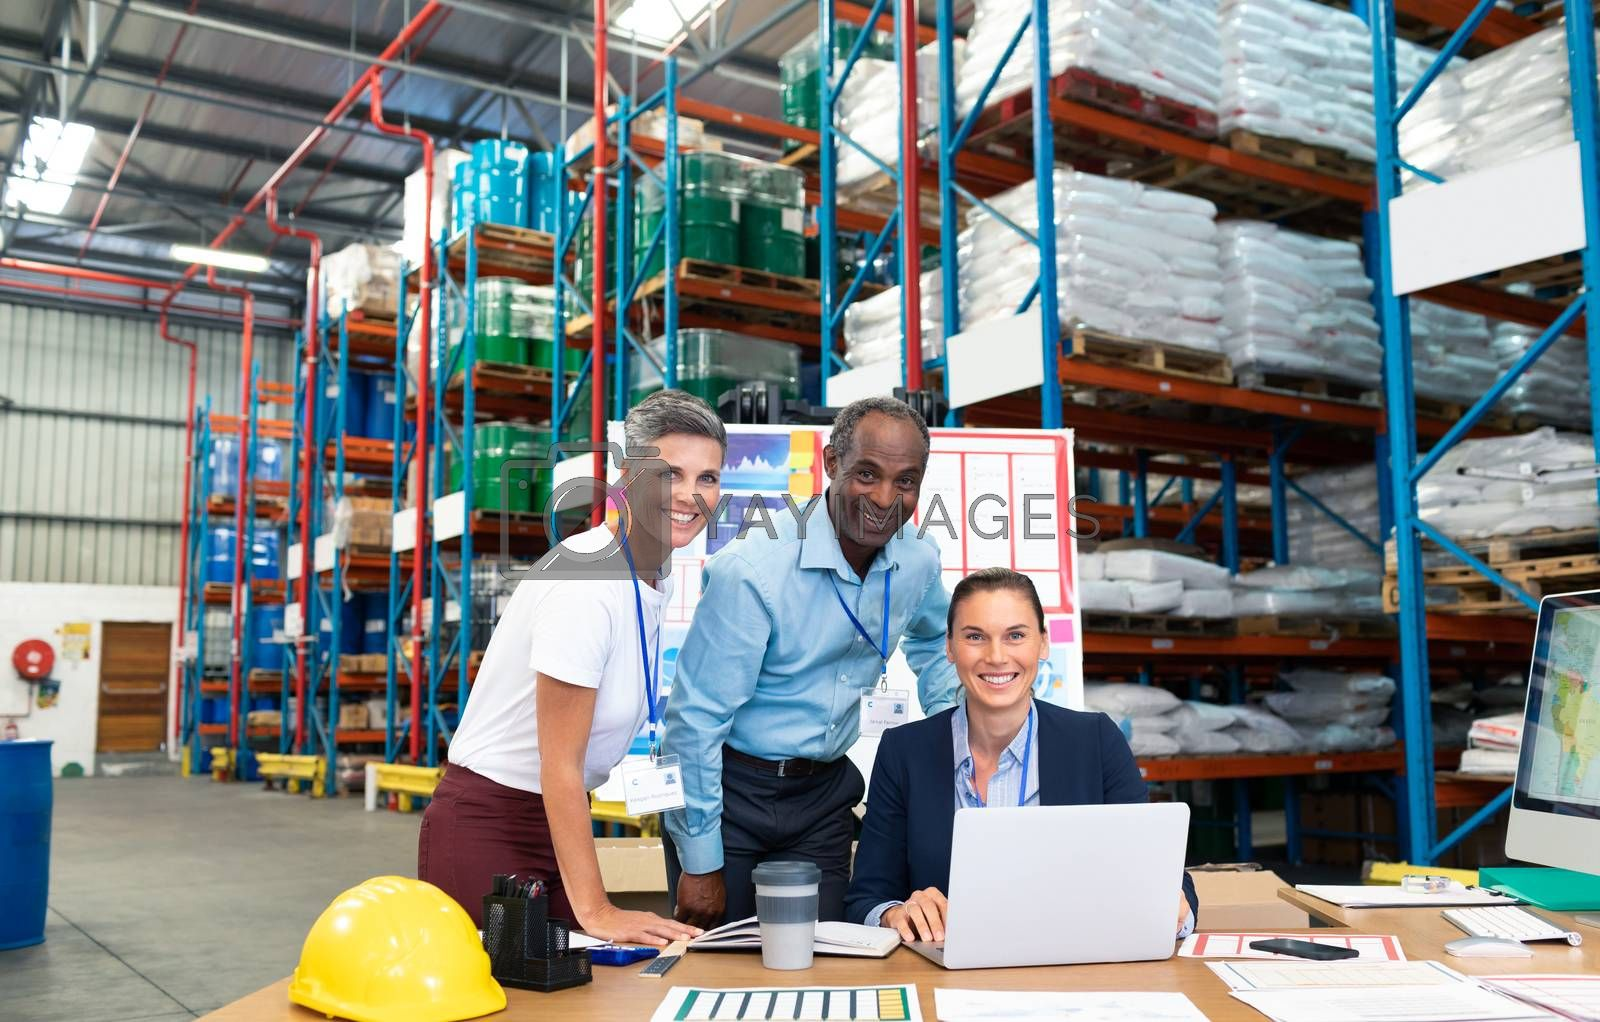 Portrait of beautiful Caucasian female manager with her coworkers discussing over laptop at desk in warehouse. This is a freight transportation and distribution warehouse. Industrial and industrial workers concept